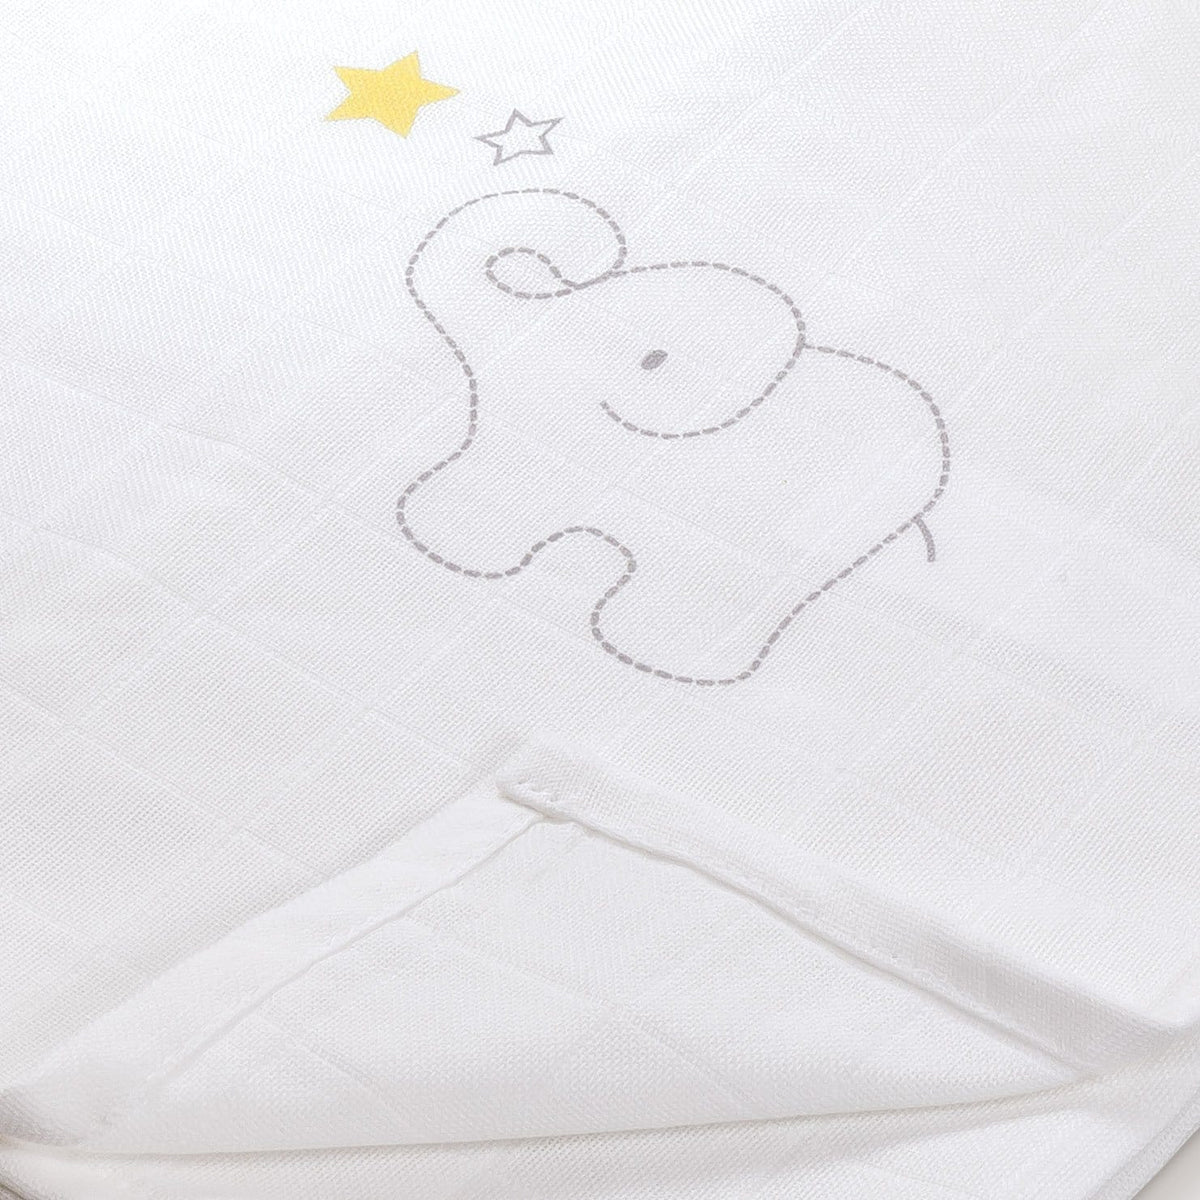 Unboxed 100/% Orgnaic Cotton Muslin Squares Personalised Organic Baby Muslins Unisex Swaddle Blanket Wraps in Smily Alphabets of Your Choice with Different Colour Letter B, Random Colour,1